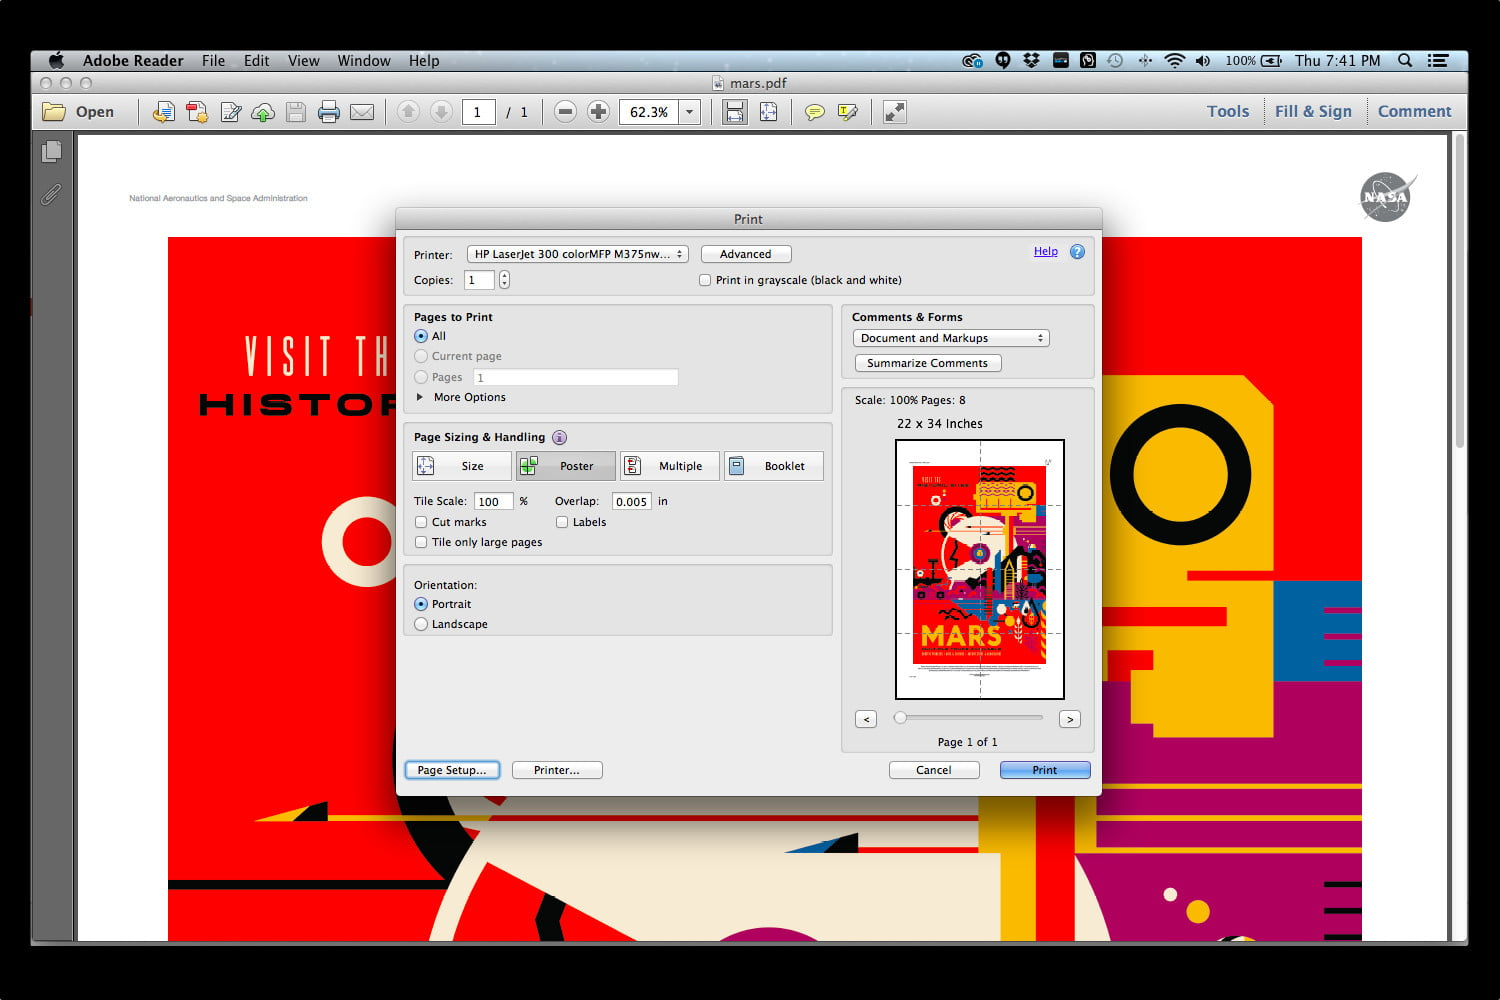 In Adobe Reader's Print Menu, You Can Choose The Poster Option To Print The  20